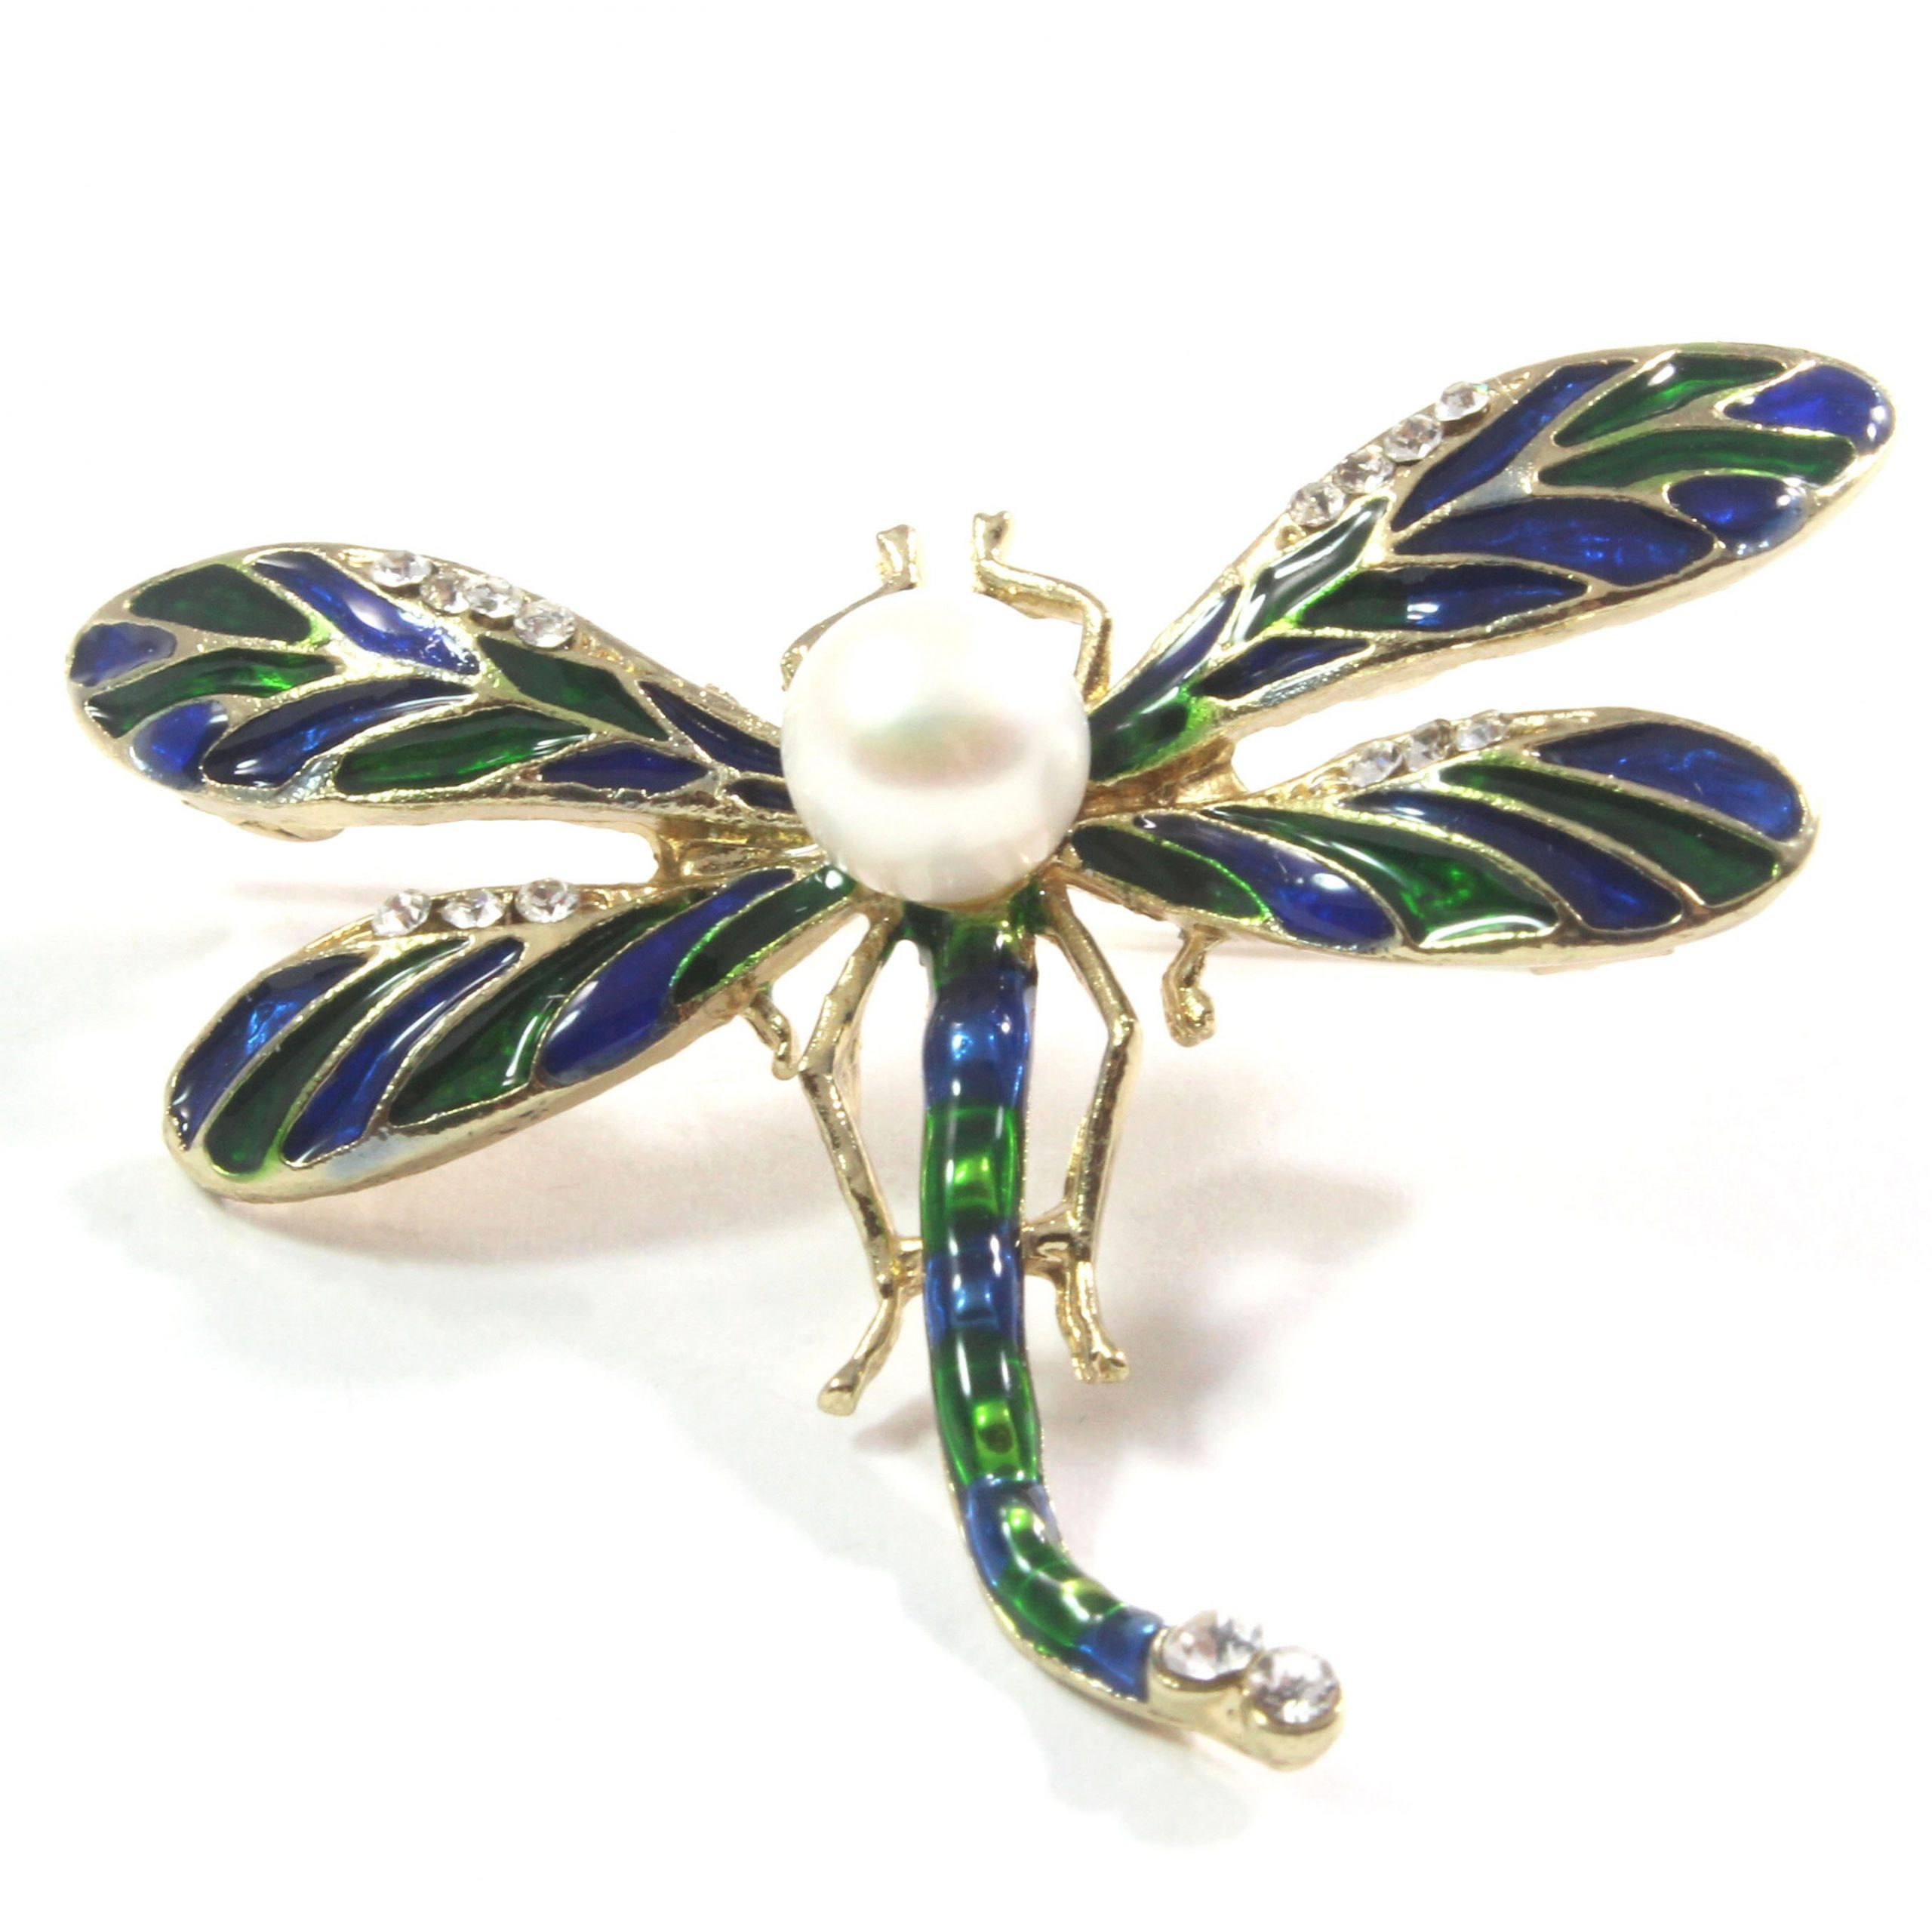 Green Dragonfly White Freshwater Cultured Pearl Brooch 7.5-8.0mm